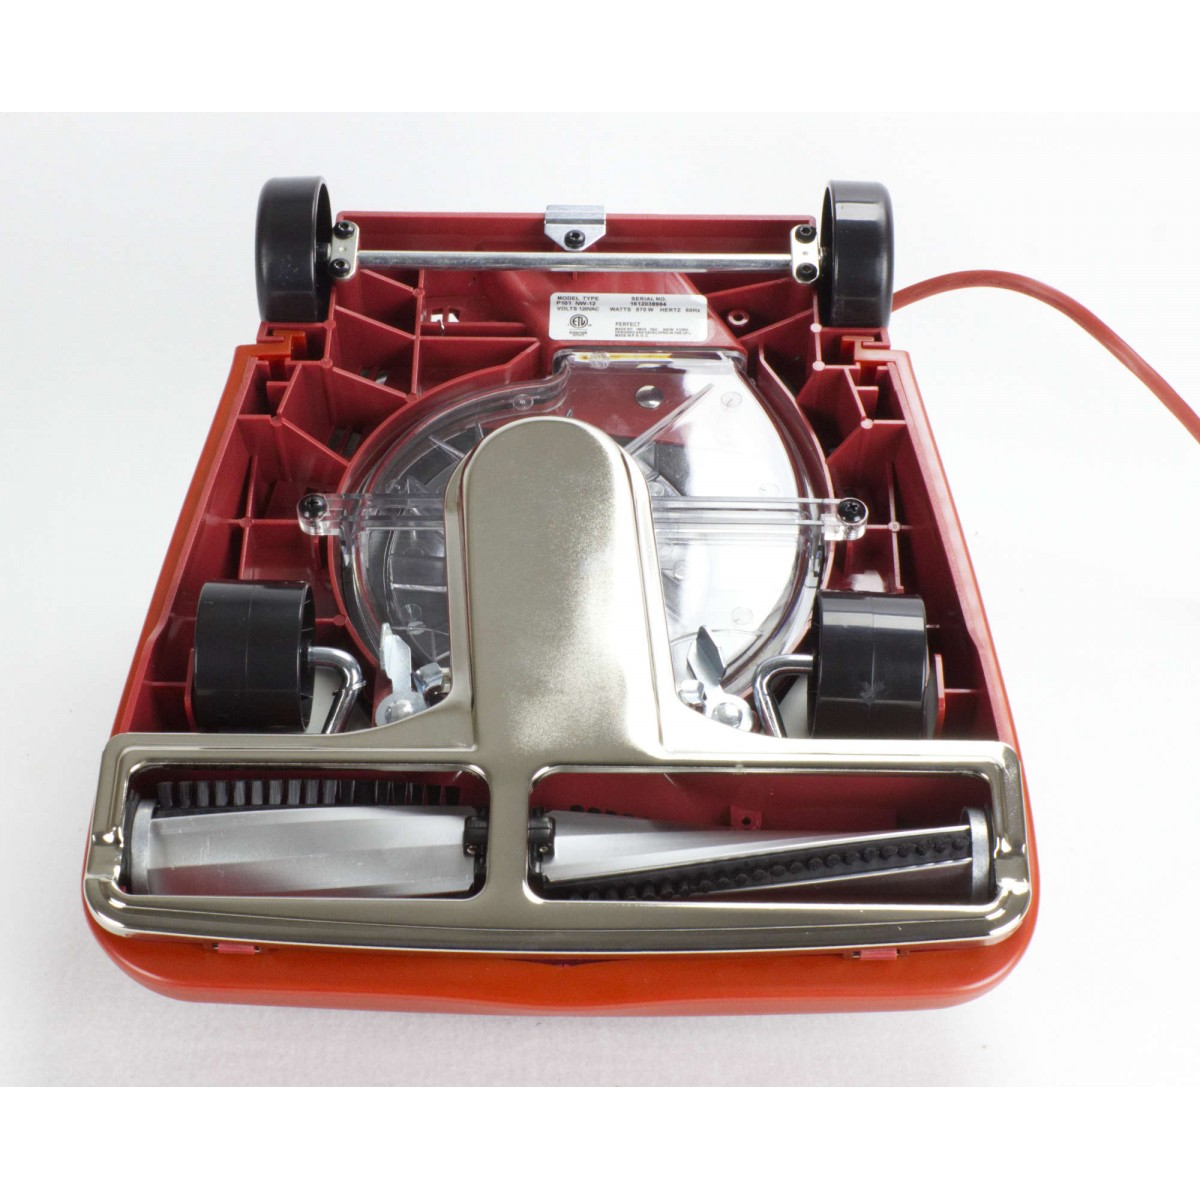 Commercial Upright Vacuum For Carpets And Hard Floors